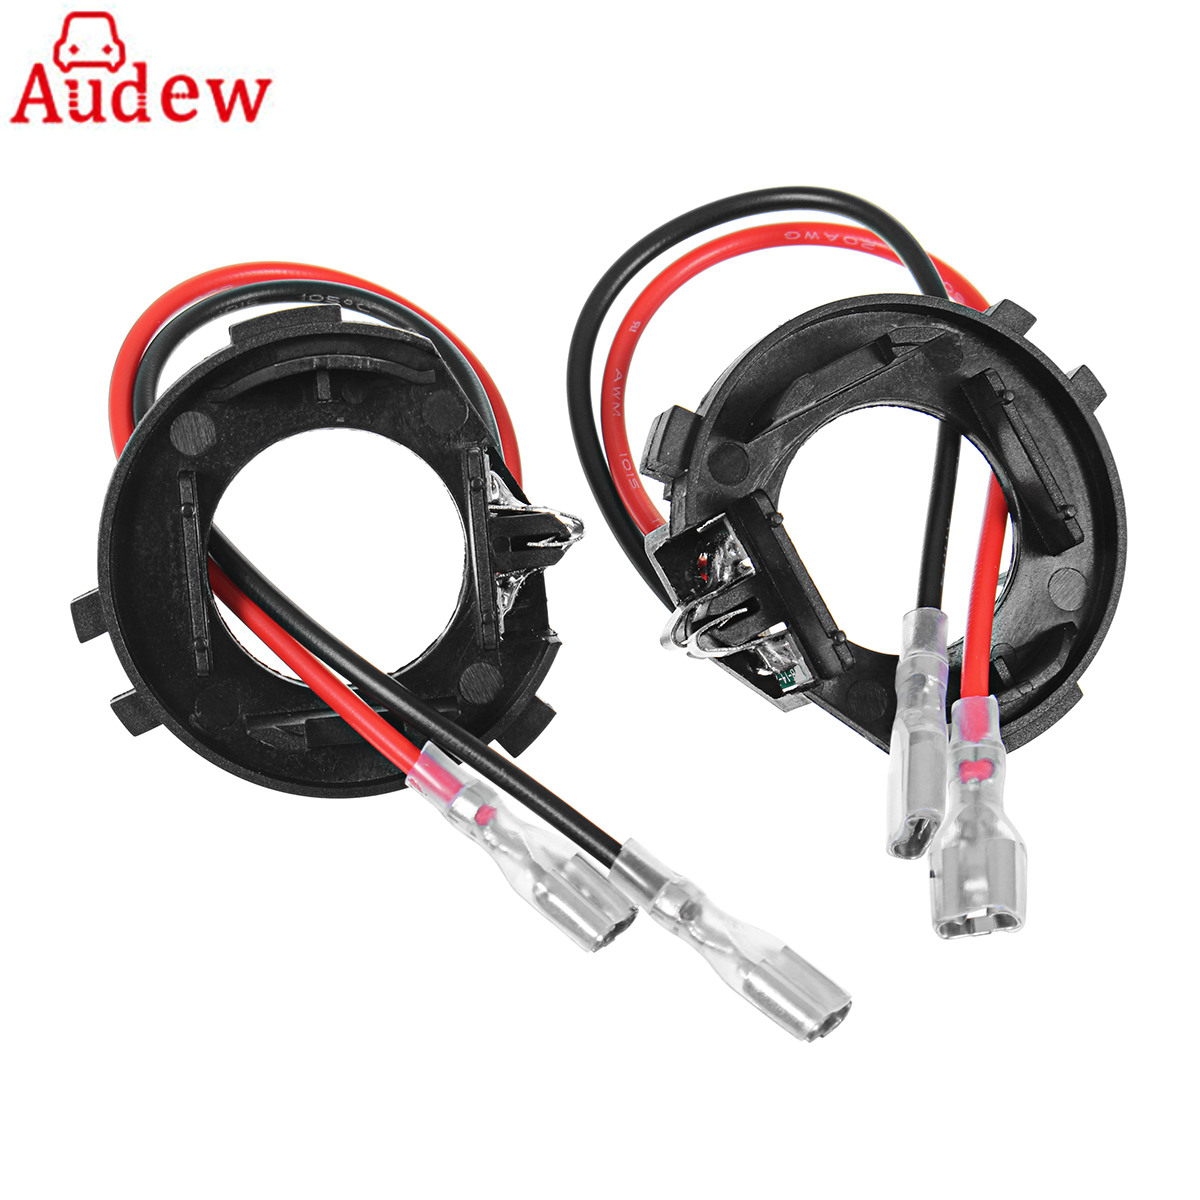 2Pcs H7 Car Headlight Bulbs Holder Adapter Base For VW Golf 7 / New Touran auto H7 Fort Headlamp LED socket Holder stents fstuning h7 led bulbs canbus led headlight no error for golf mk5 with h7 bulb holders adapters base for volkswagen golf 5 jetta